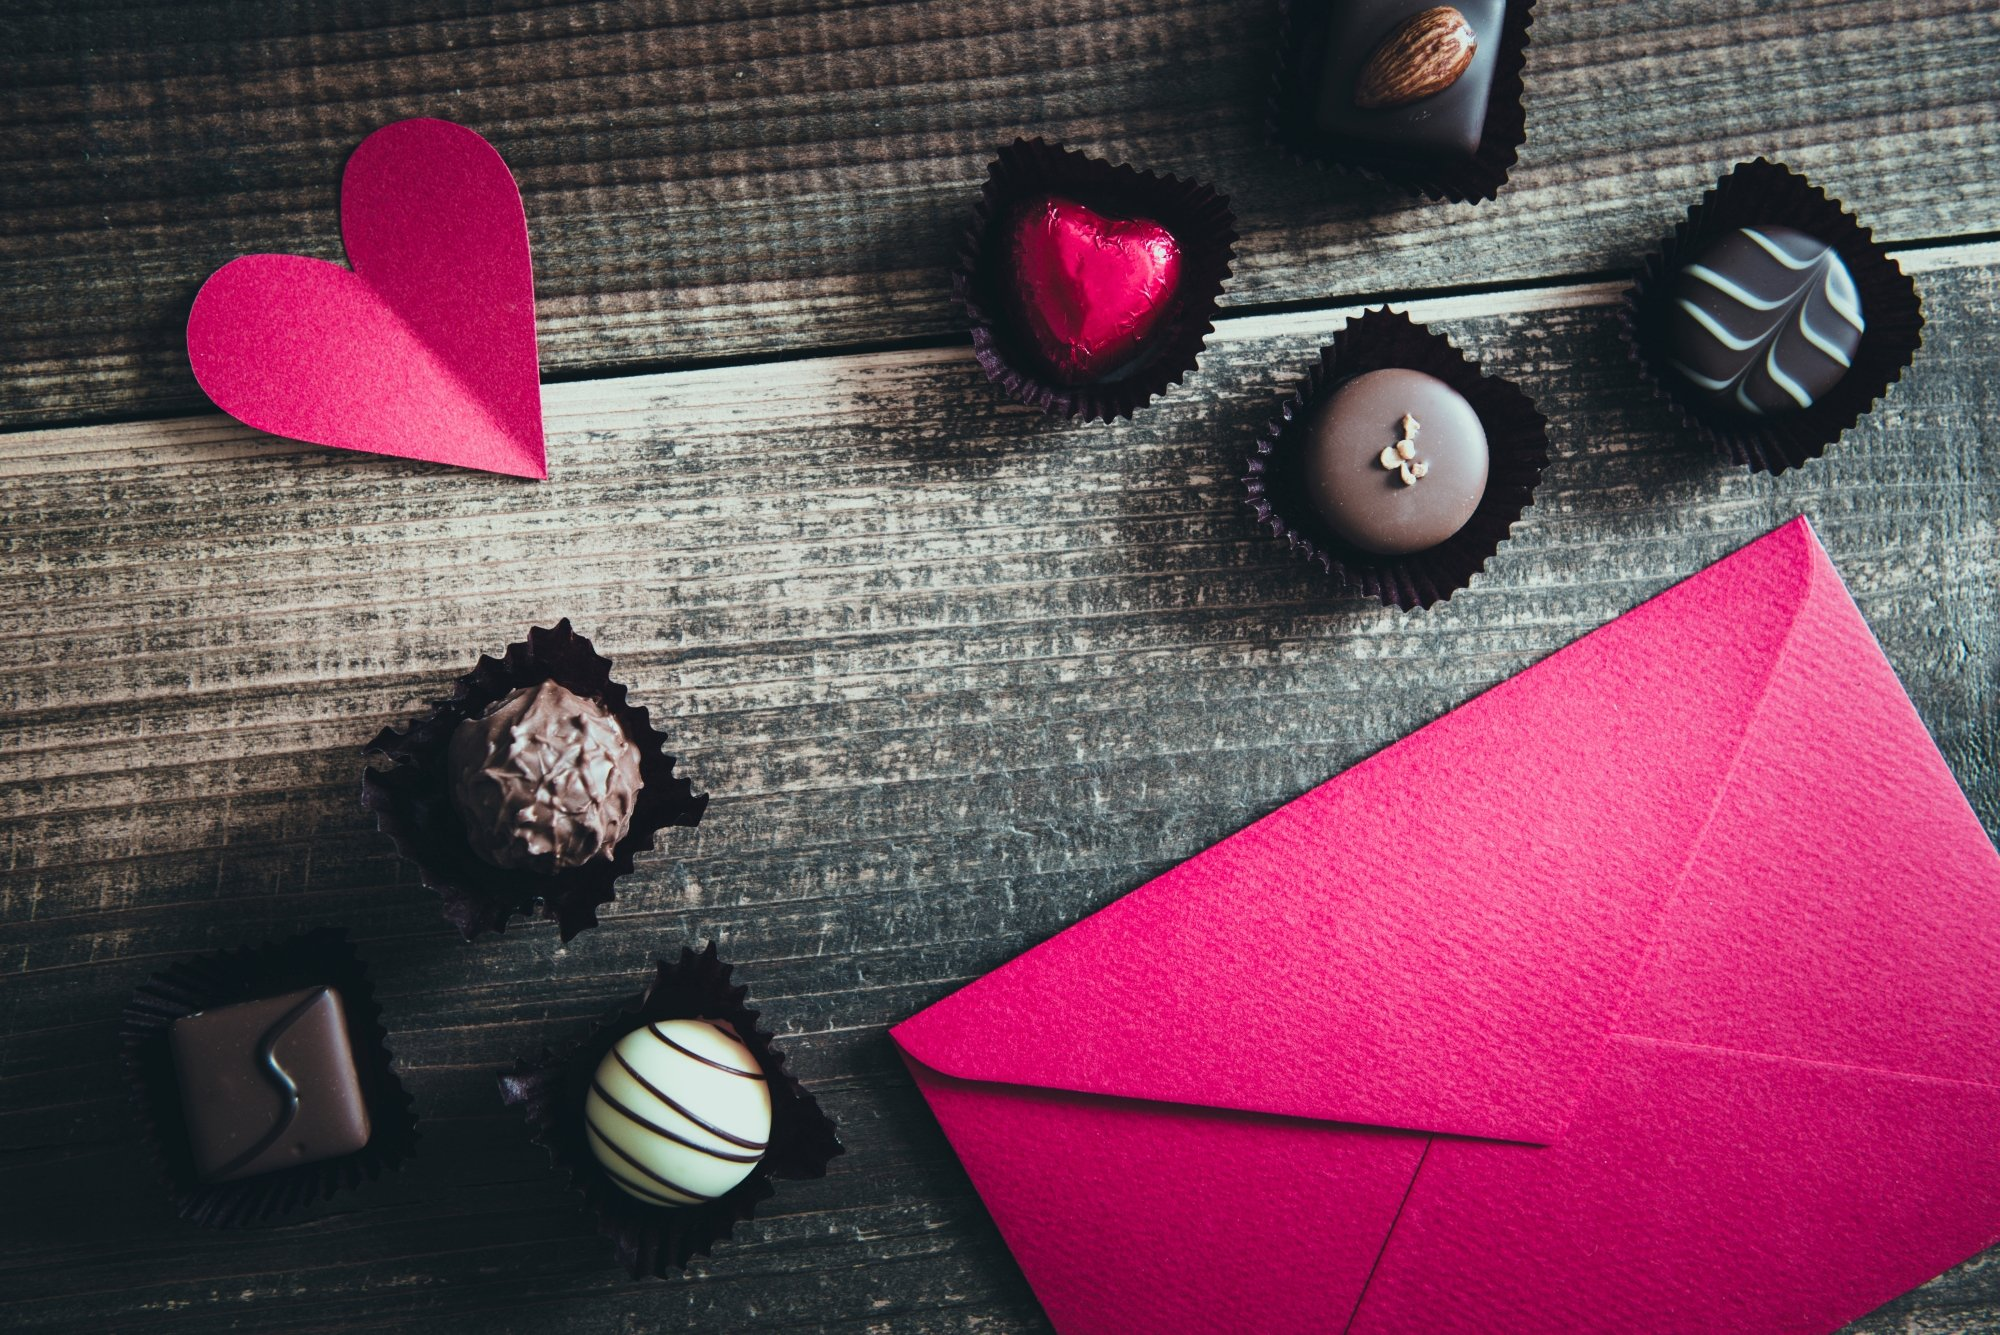 Some chocolates and a pink love letter rest on a table